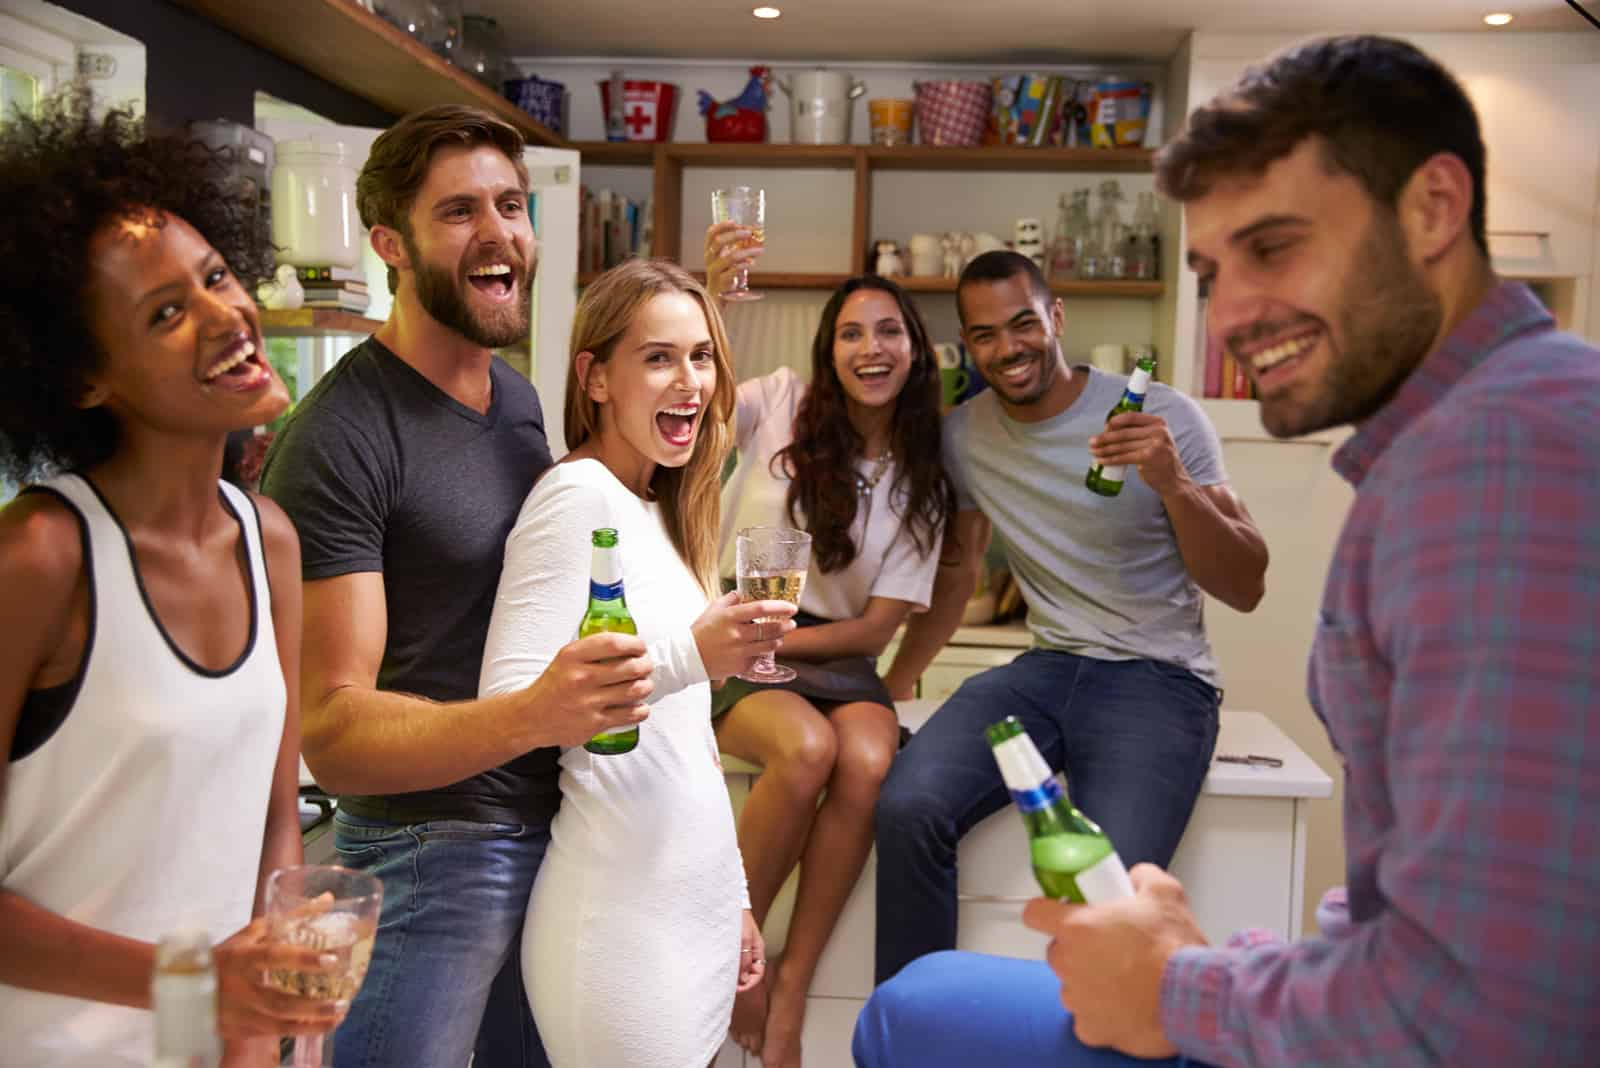 a group of cheerful friends have fun at home with alcohol